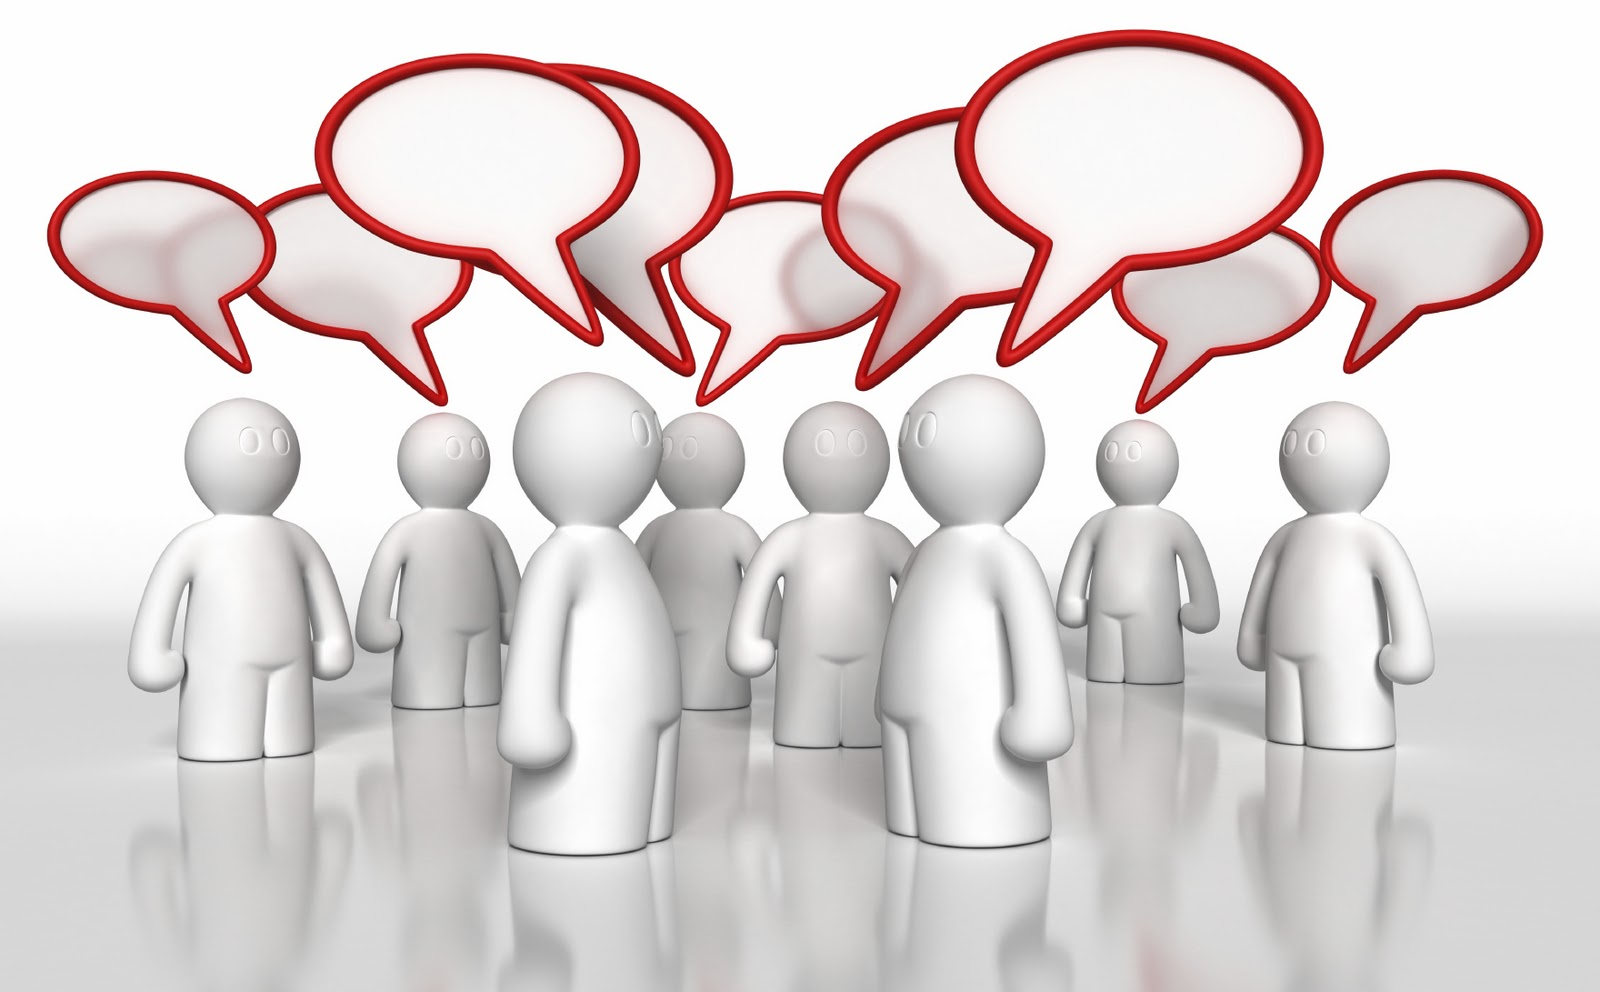 Discussion clipart free stock Discussion Clipart | Clipart Panda - Free Clipart Images stock